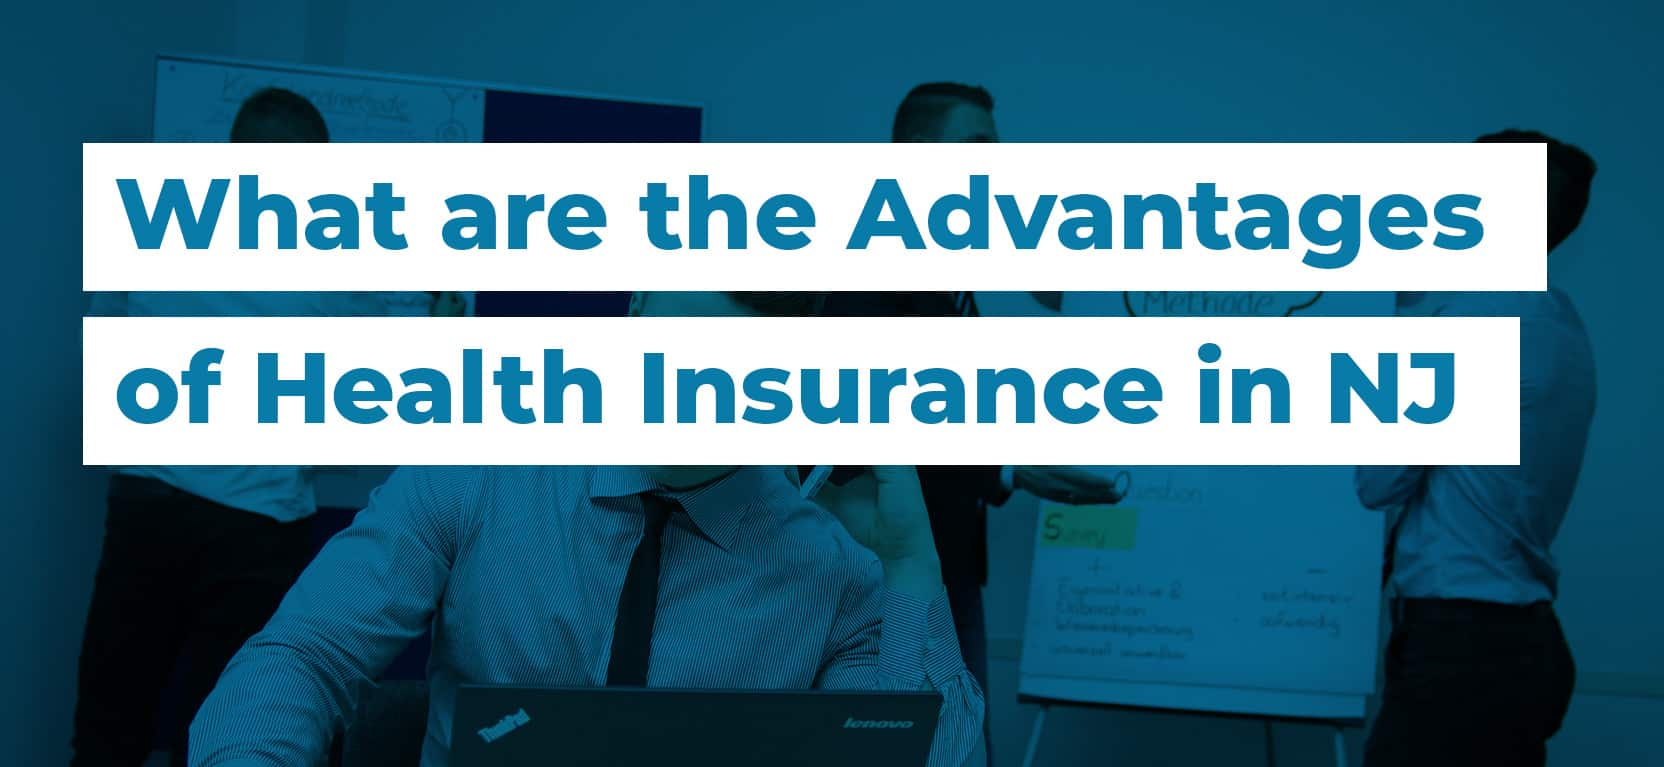 54 What are the Advantages of Health Insurance in NJ3